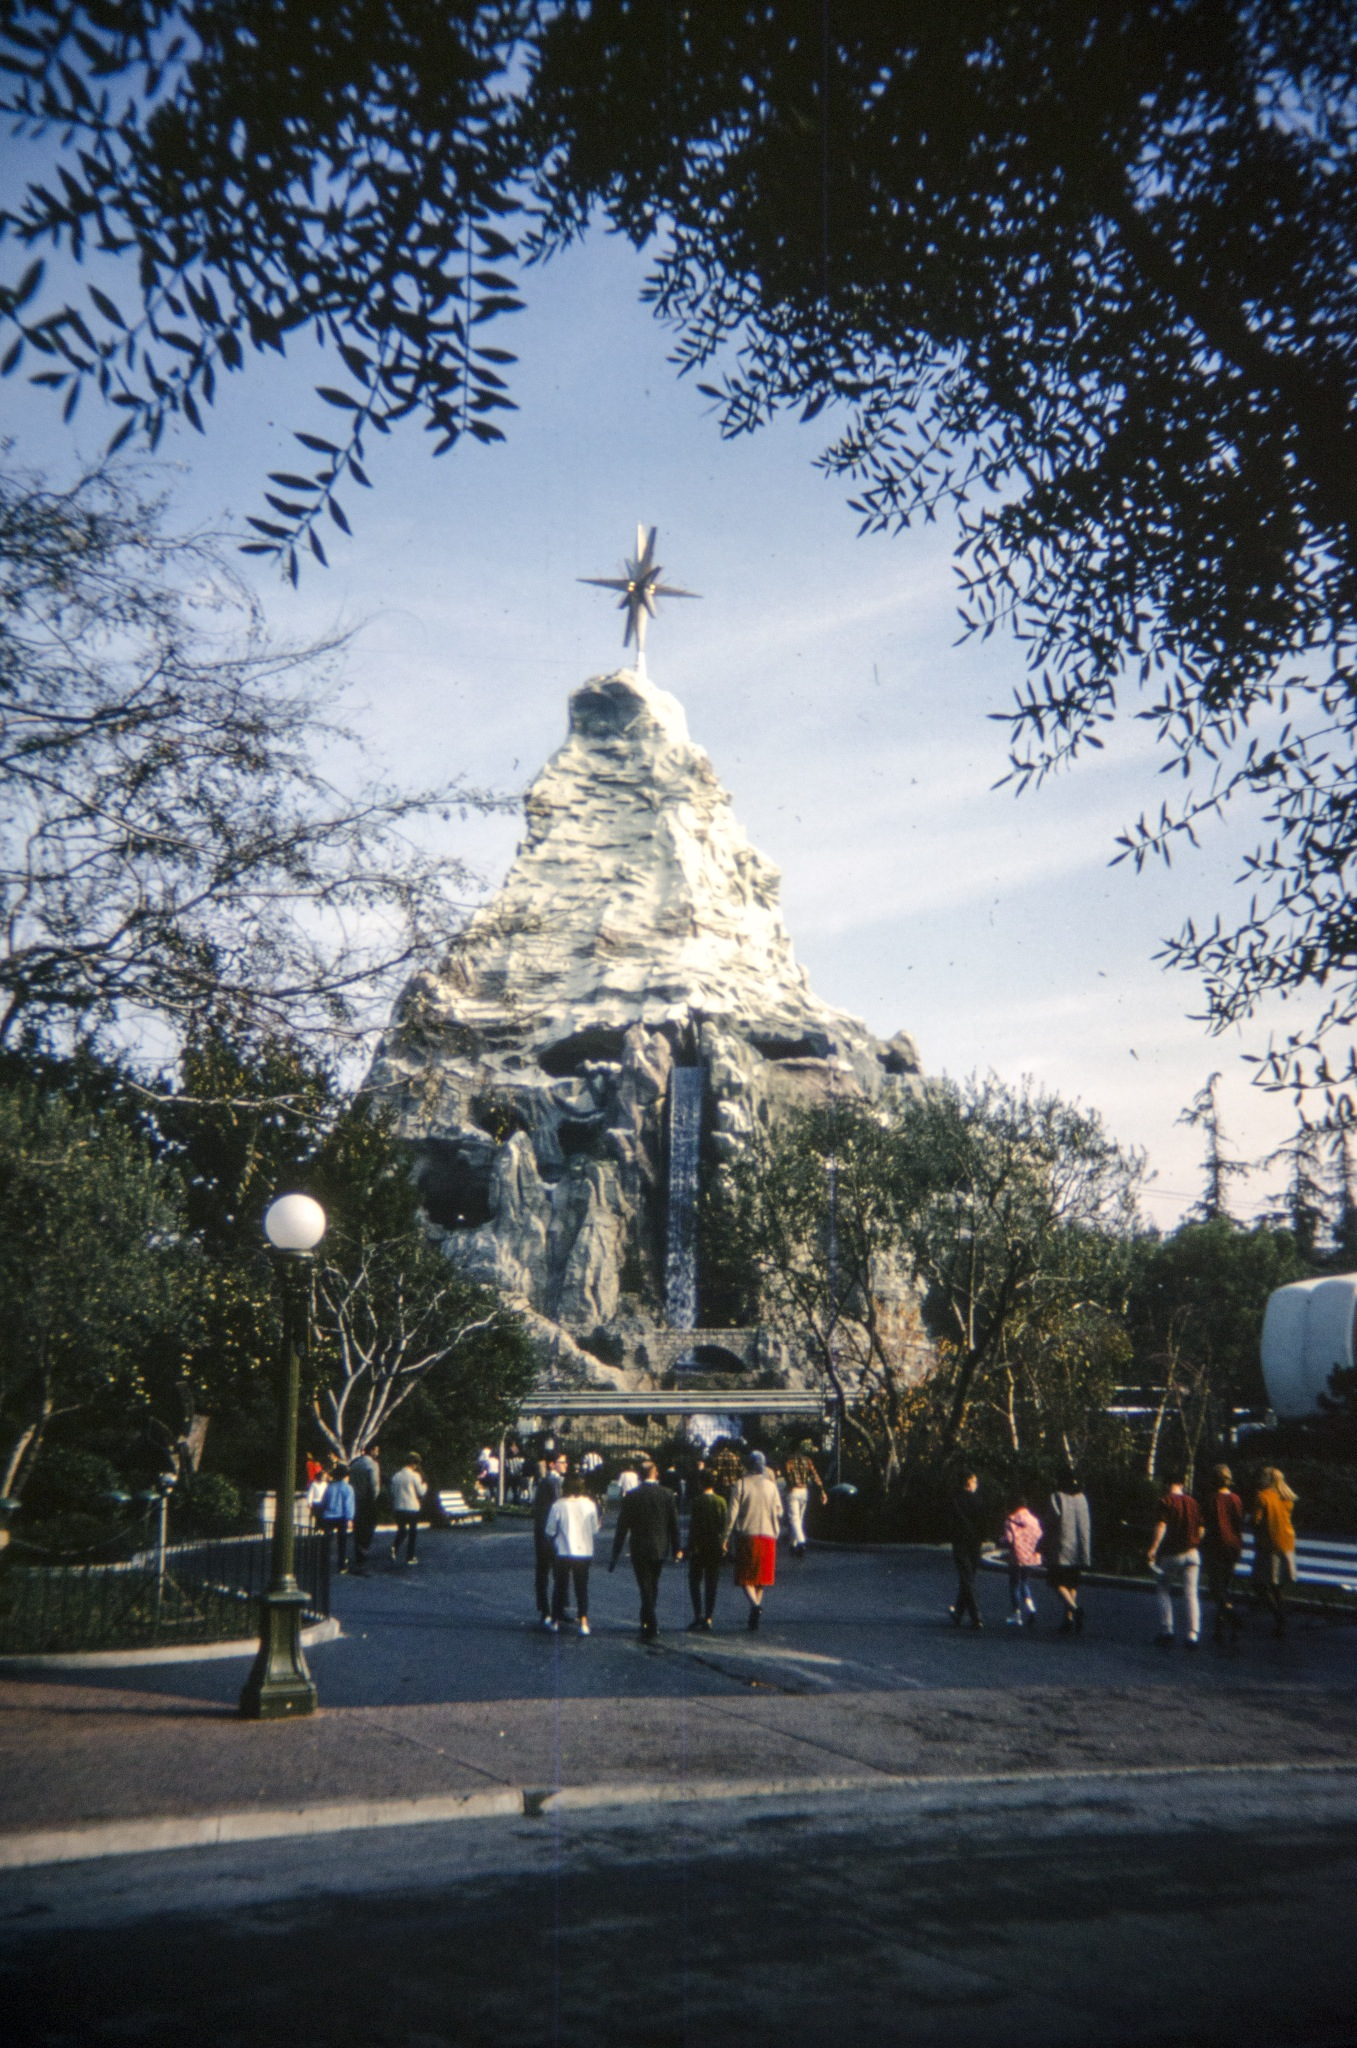 The Matterhorn with star